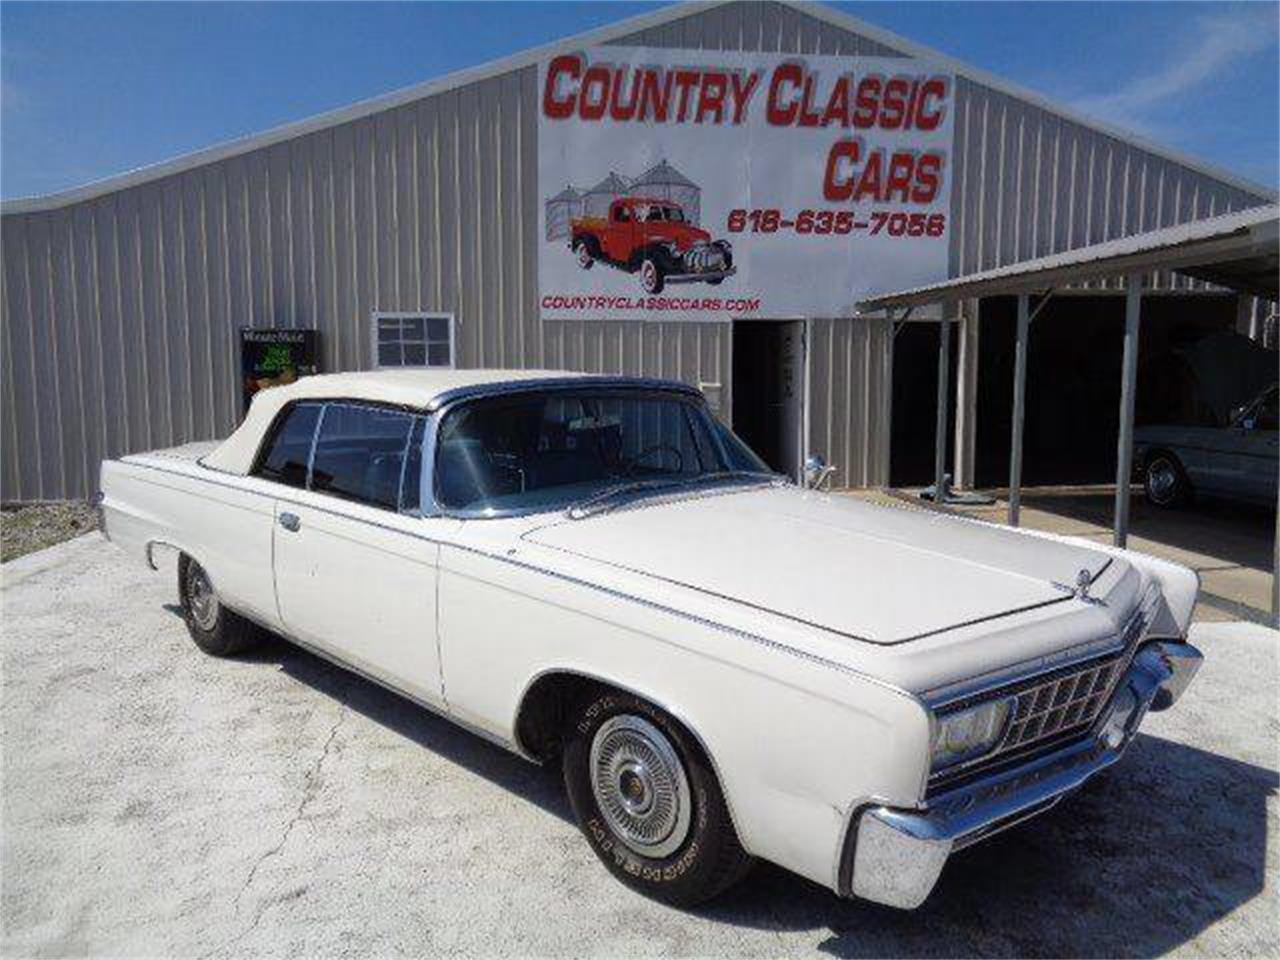 Large Picture of 1966 Chrysler Imperial Crown located in Staunton Illinois - $12,850.00 - QC77